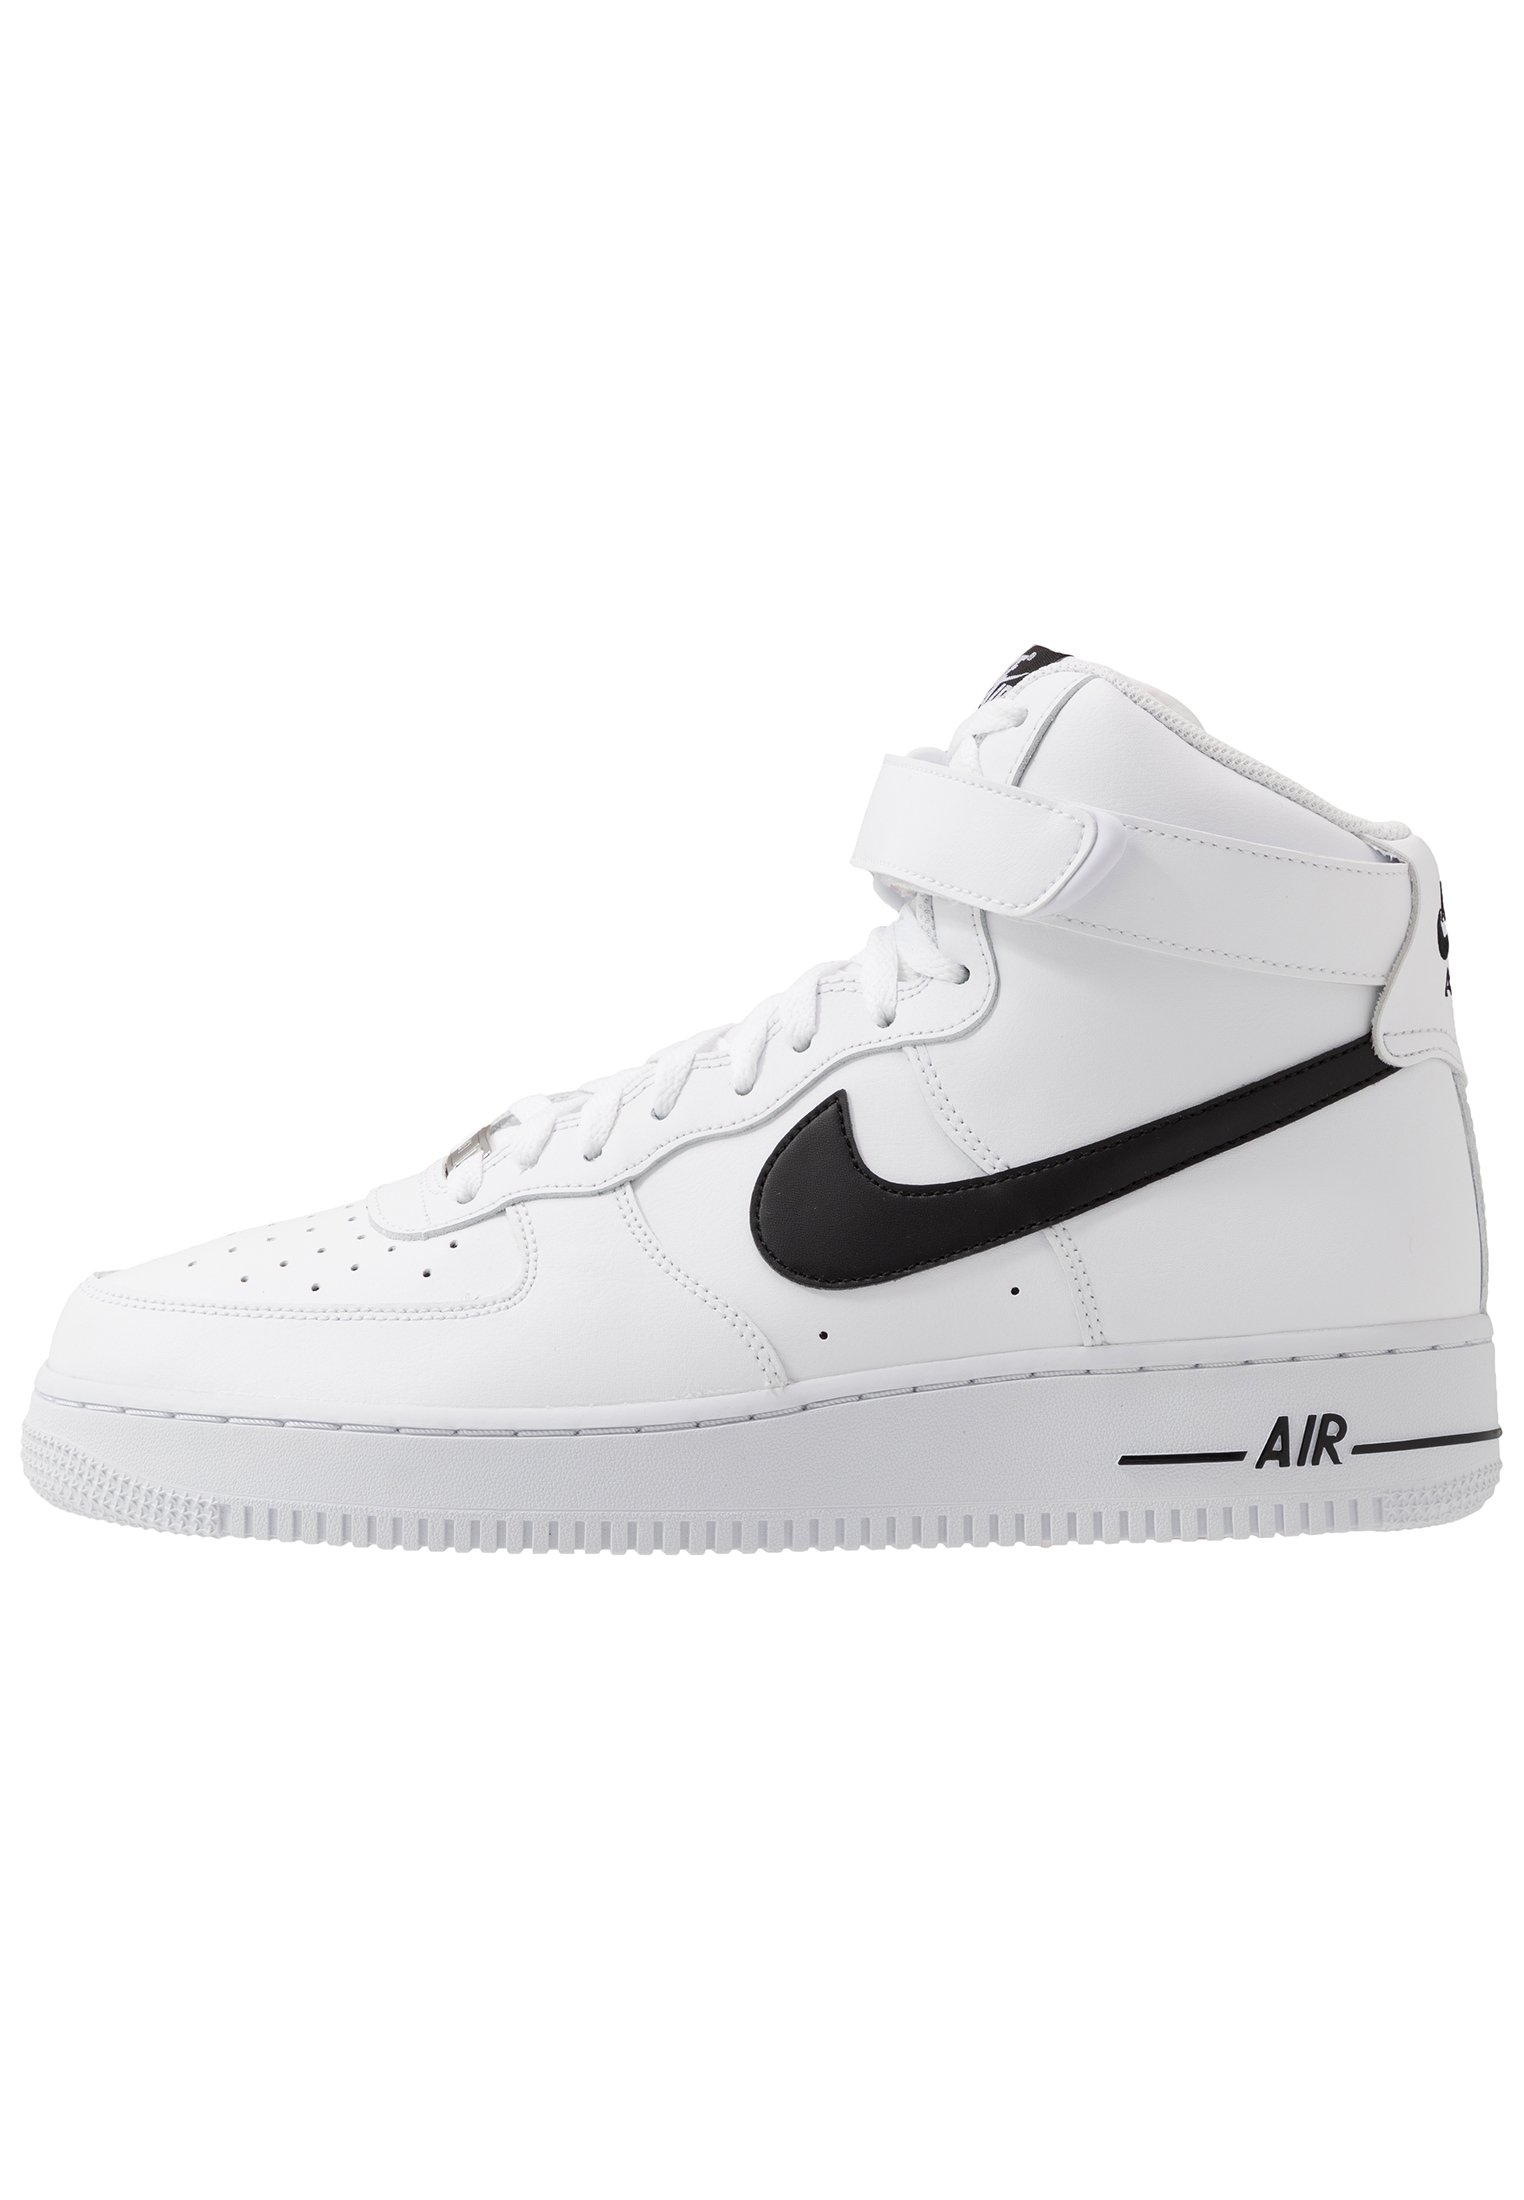 air force 1 uomo alte arancioni